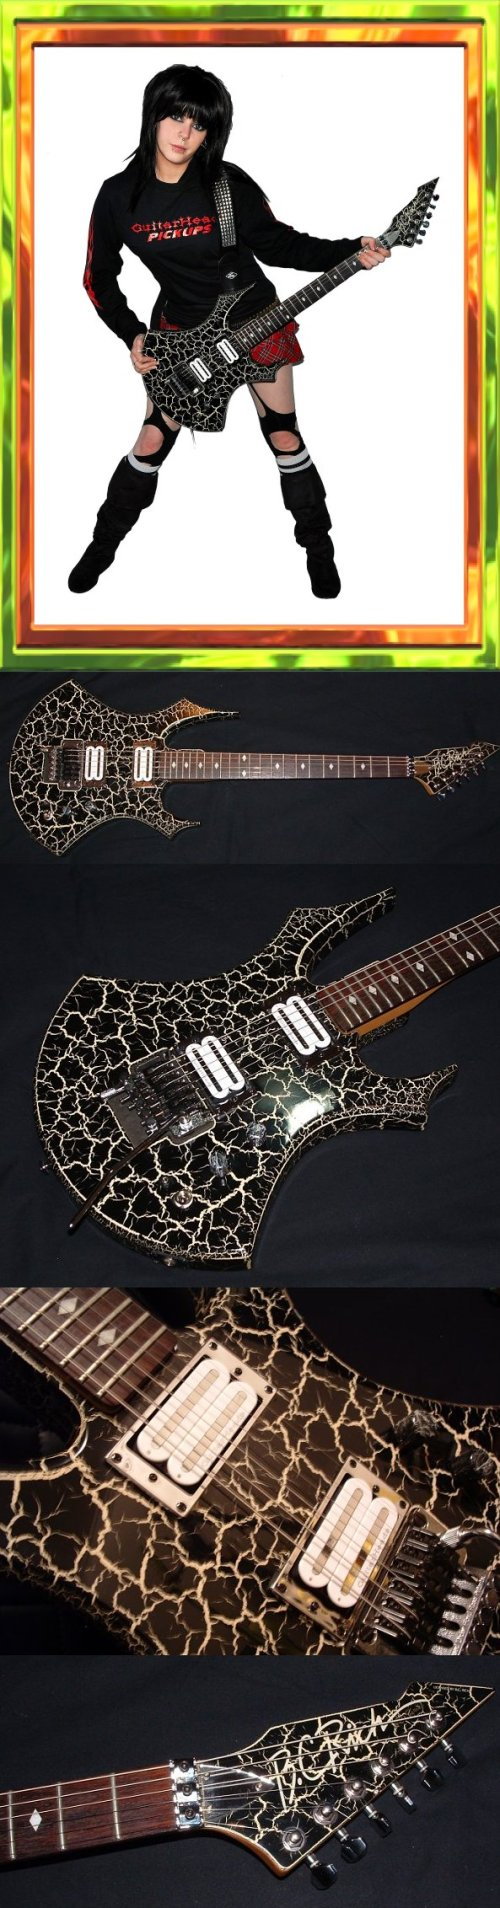 small resolution of bc rich virgin 1986 nj series w crackle finish upgraded hardware electronics custom plates